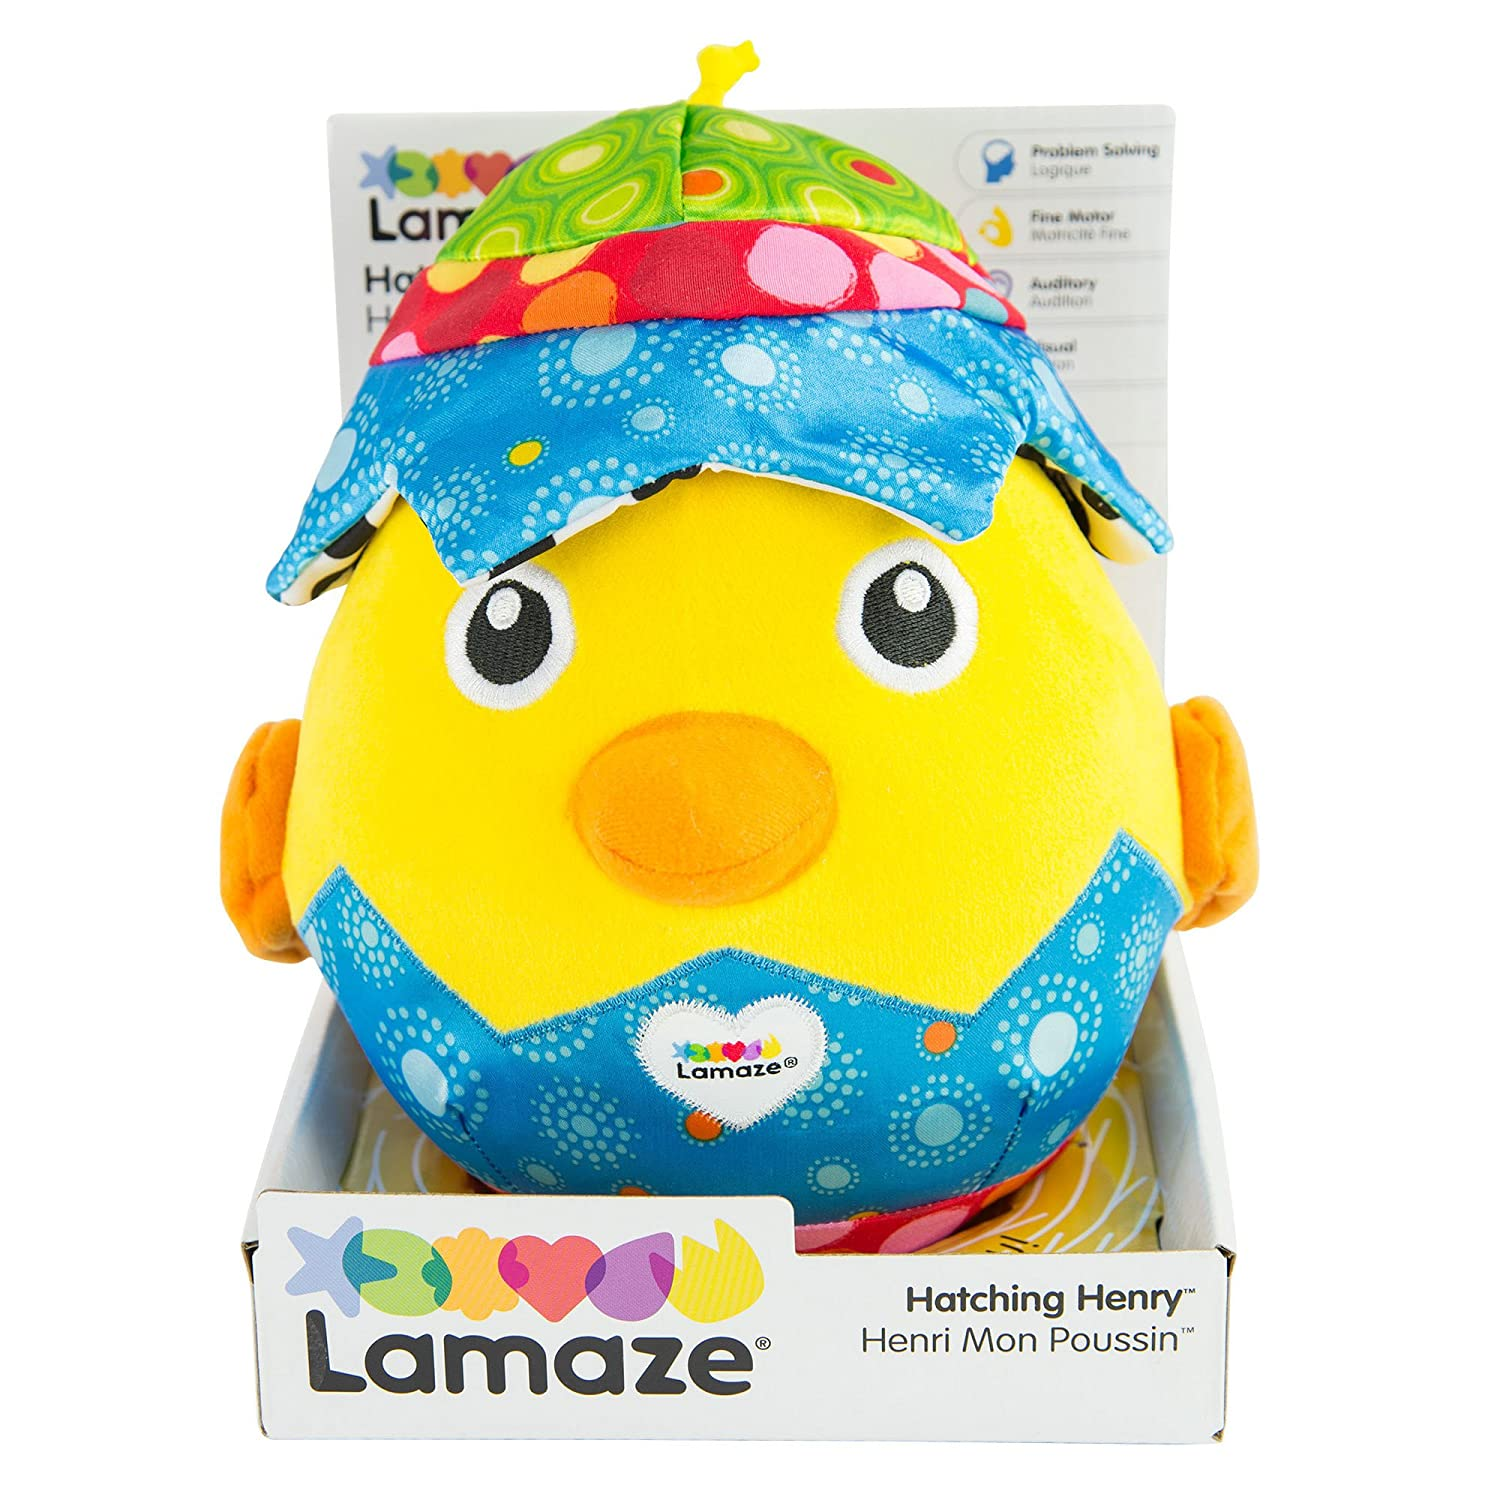 Lamaze Hatching Henry Musical Toys Baby//Kids//Toddler Development Game w 5 Sounds